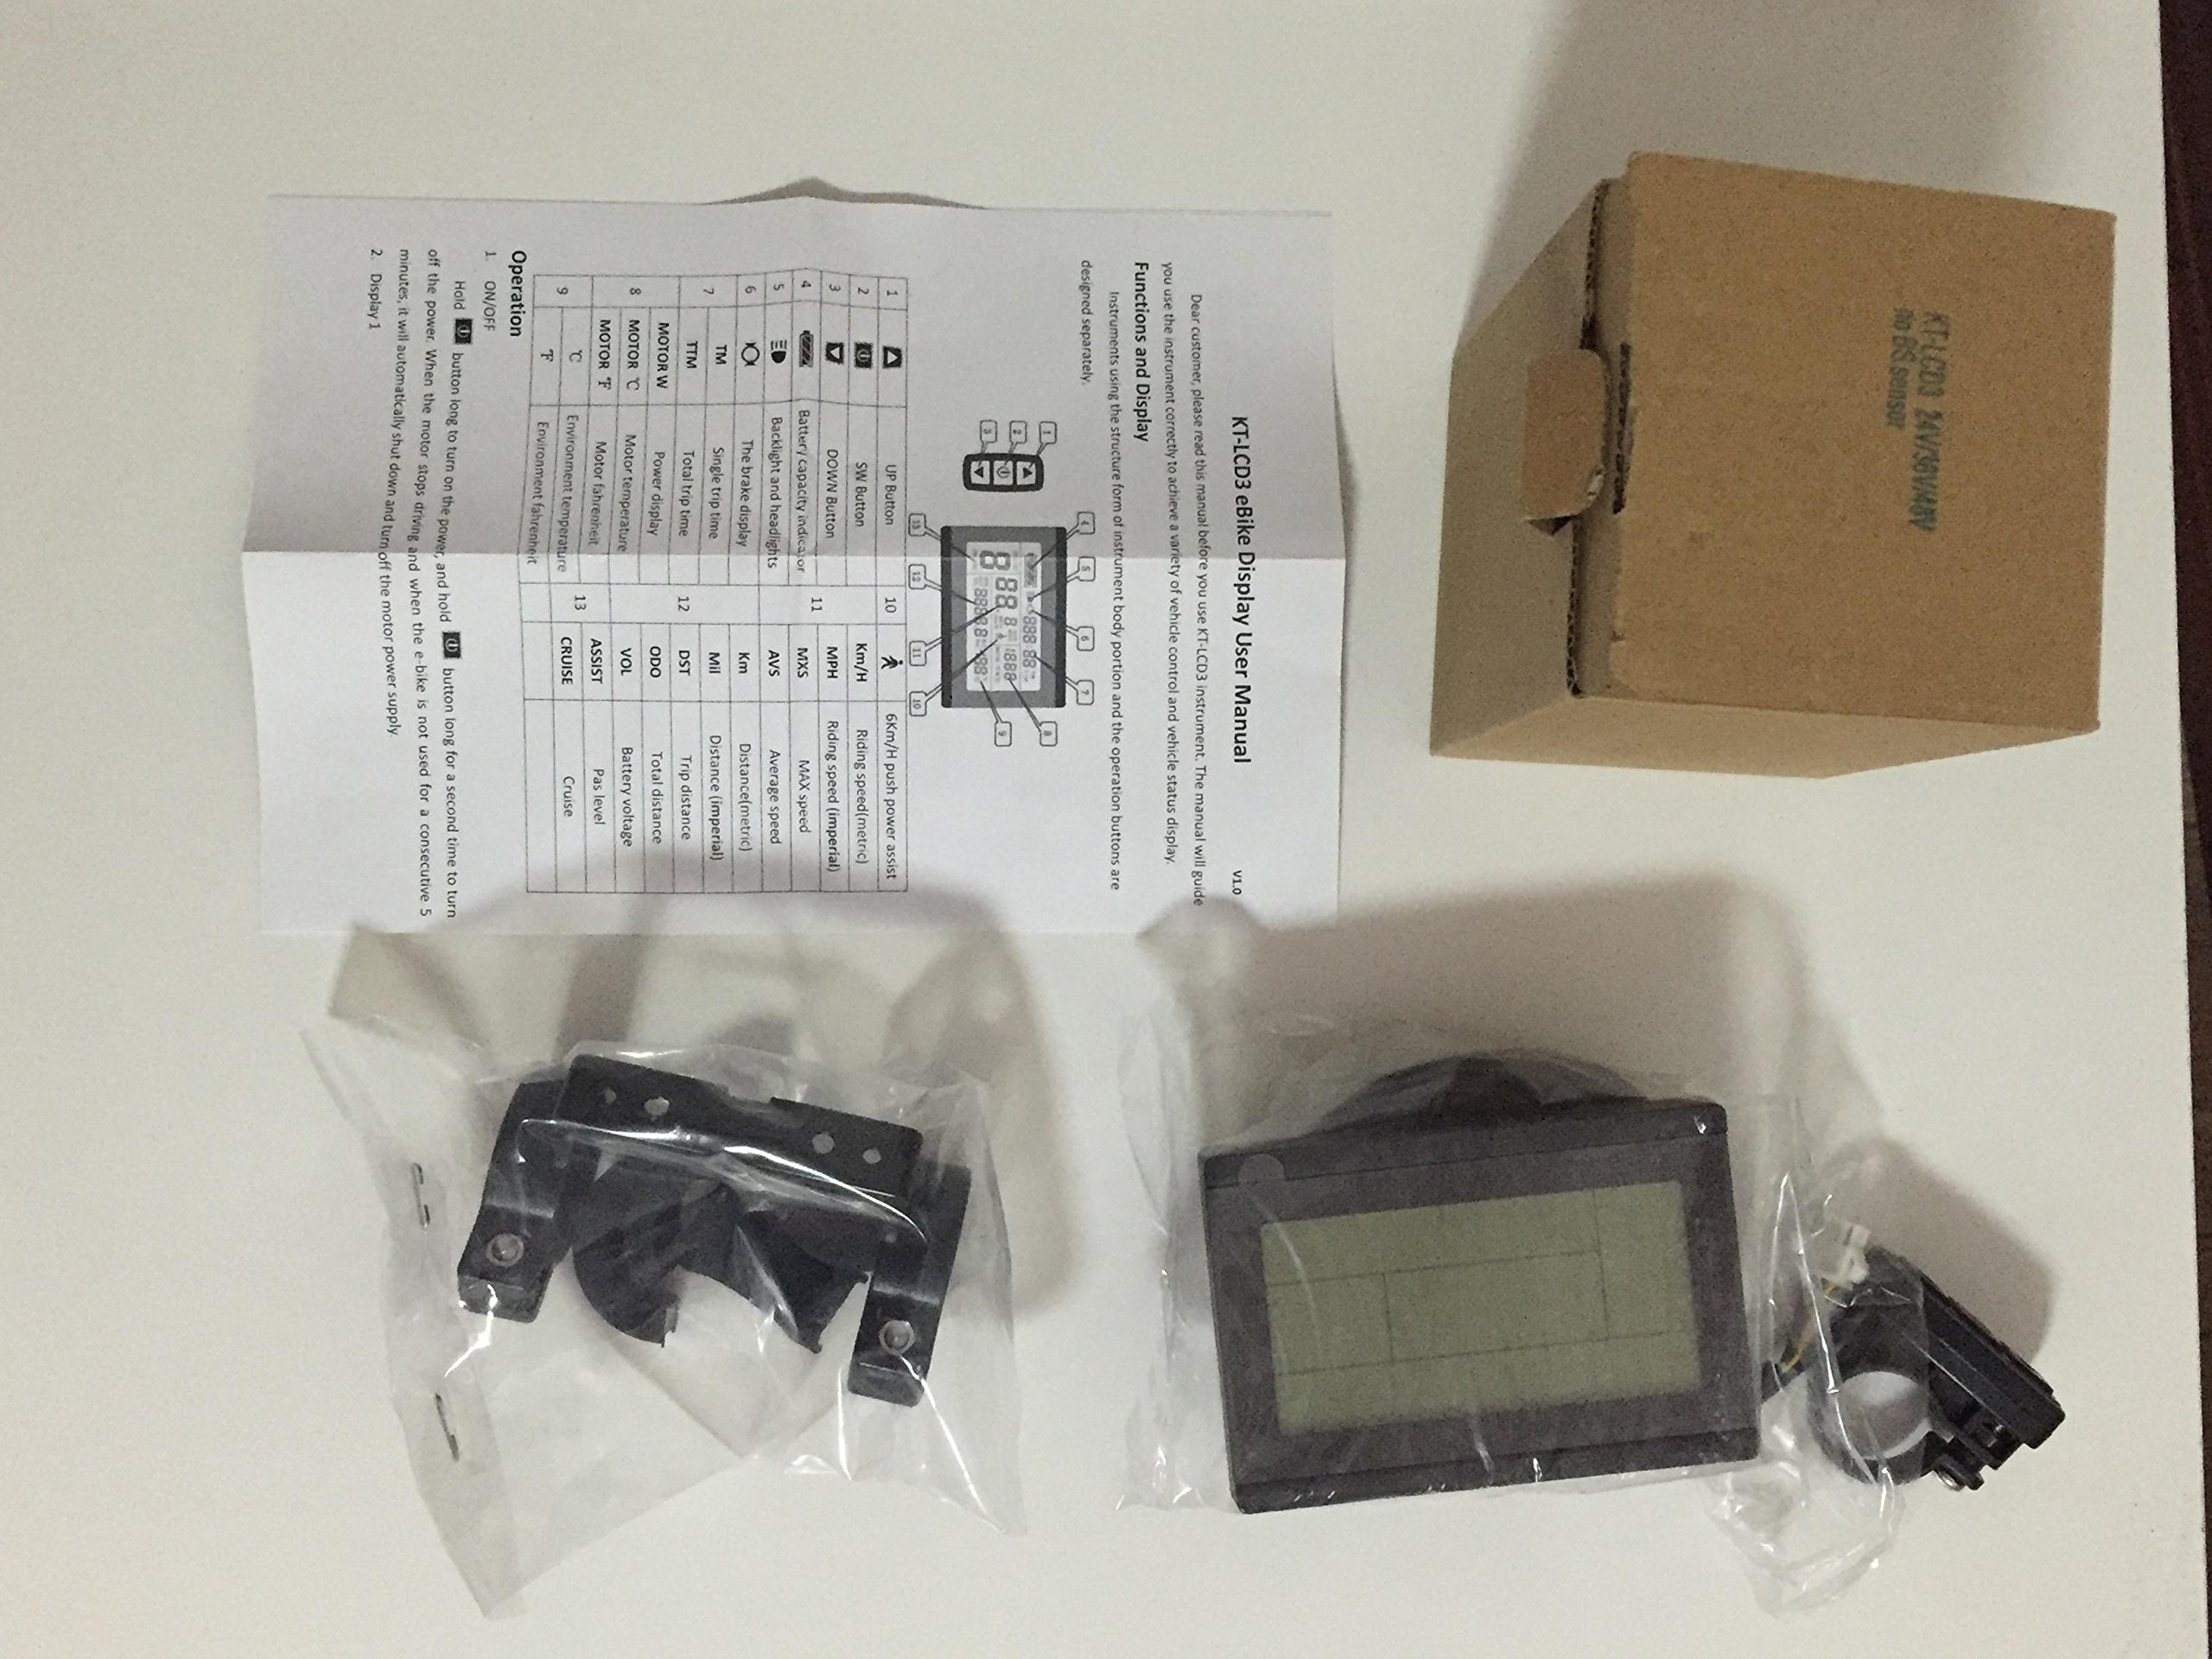 91se2U7Ns2L - NBPOWER 36V/48V 750W 25A Brushless DC Motor Controller Ebike Controller +KT-LCD3 Display One Set,used for 750W-1000W…